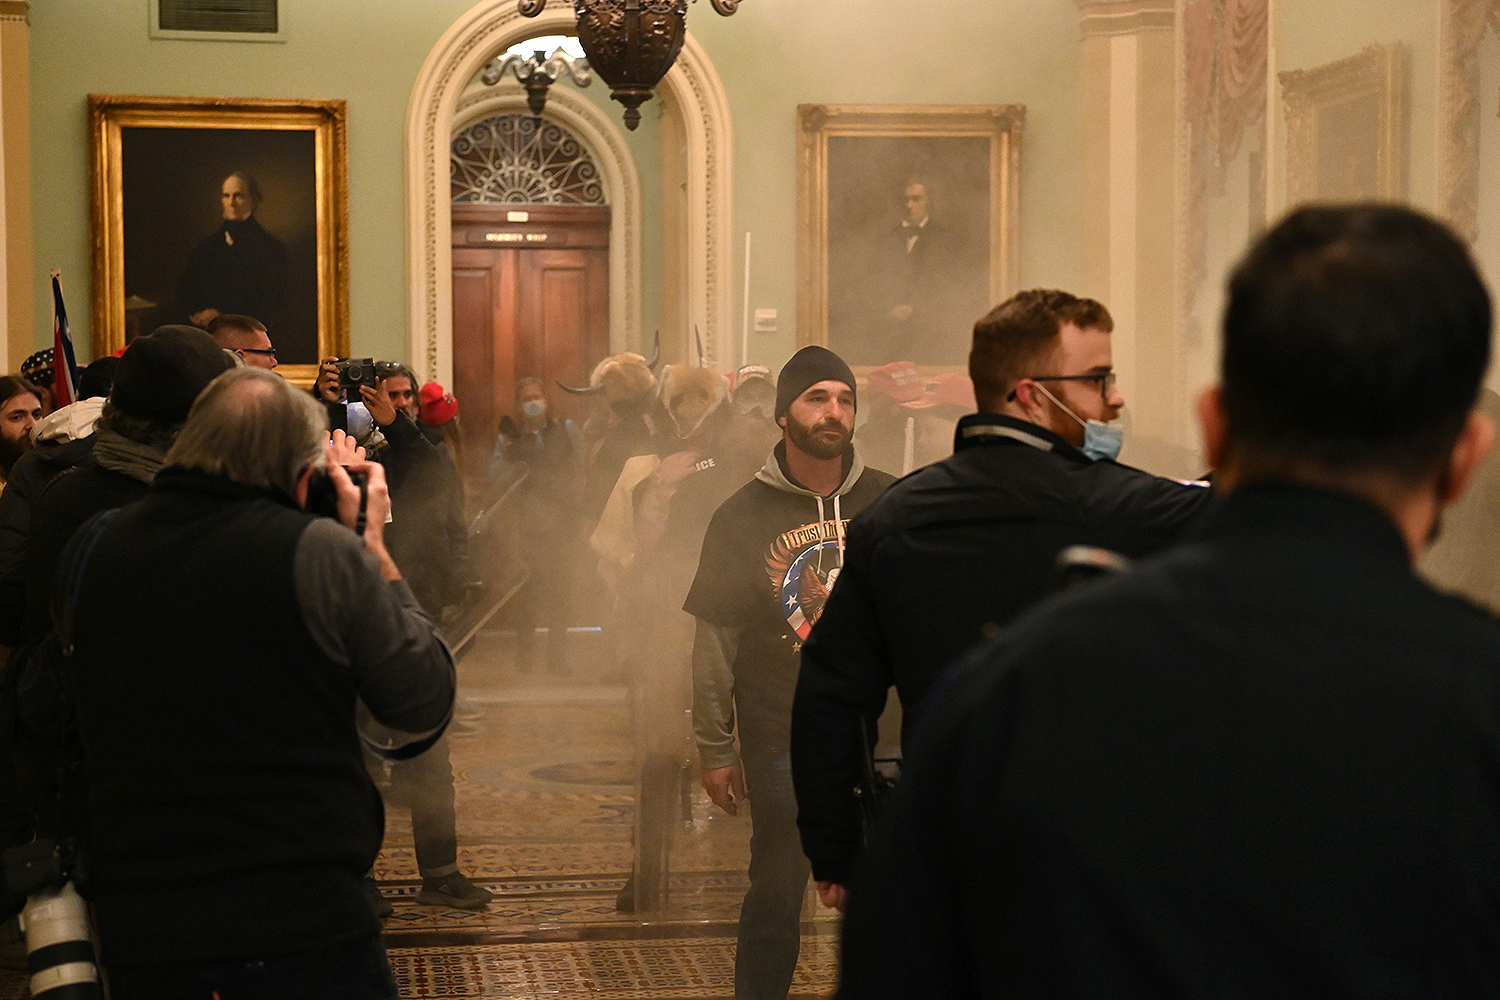 Protesters breach Capitol building